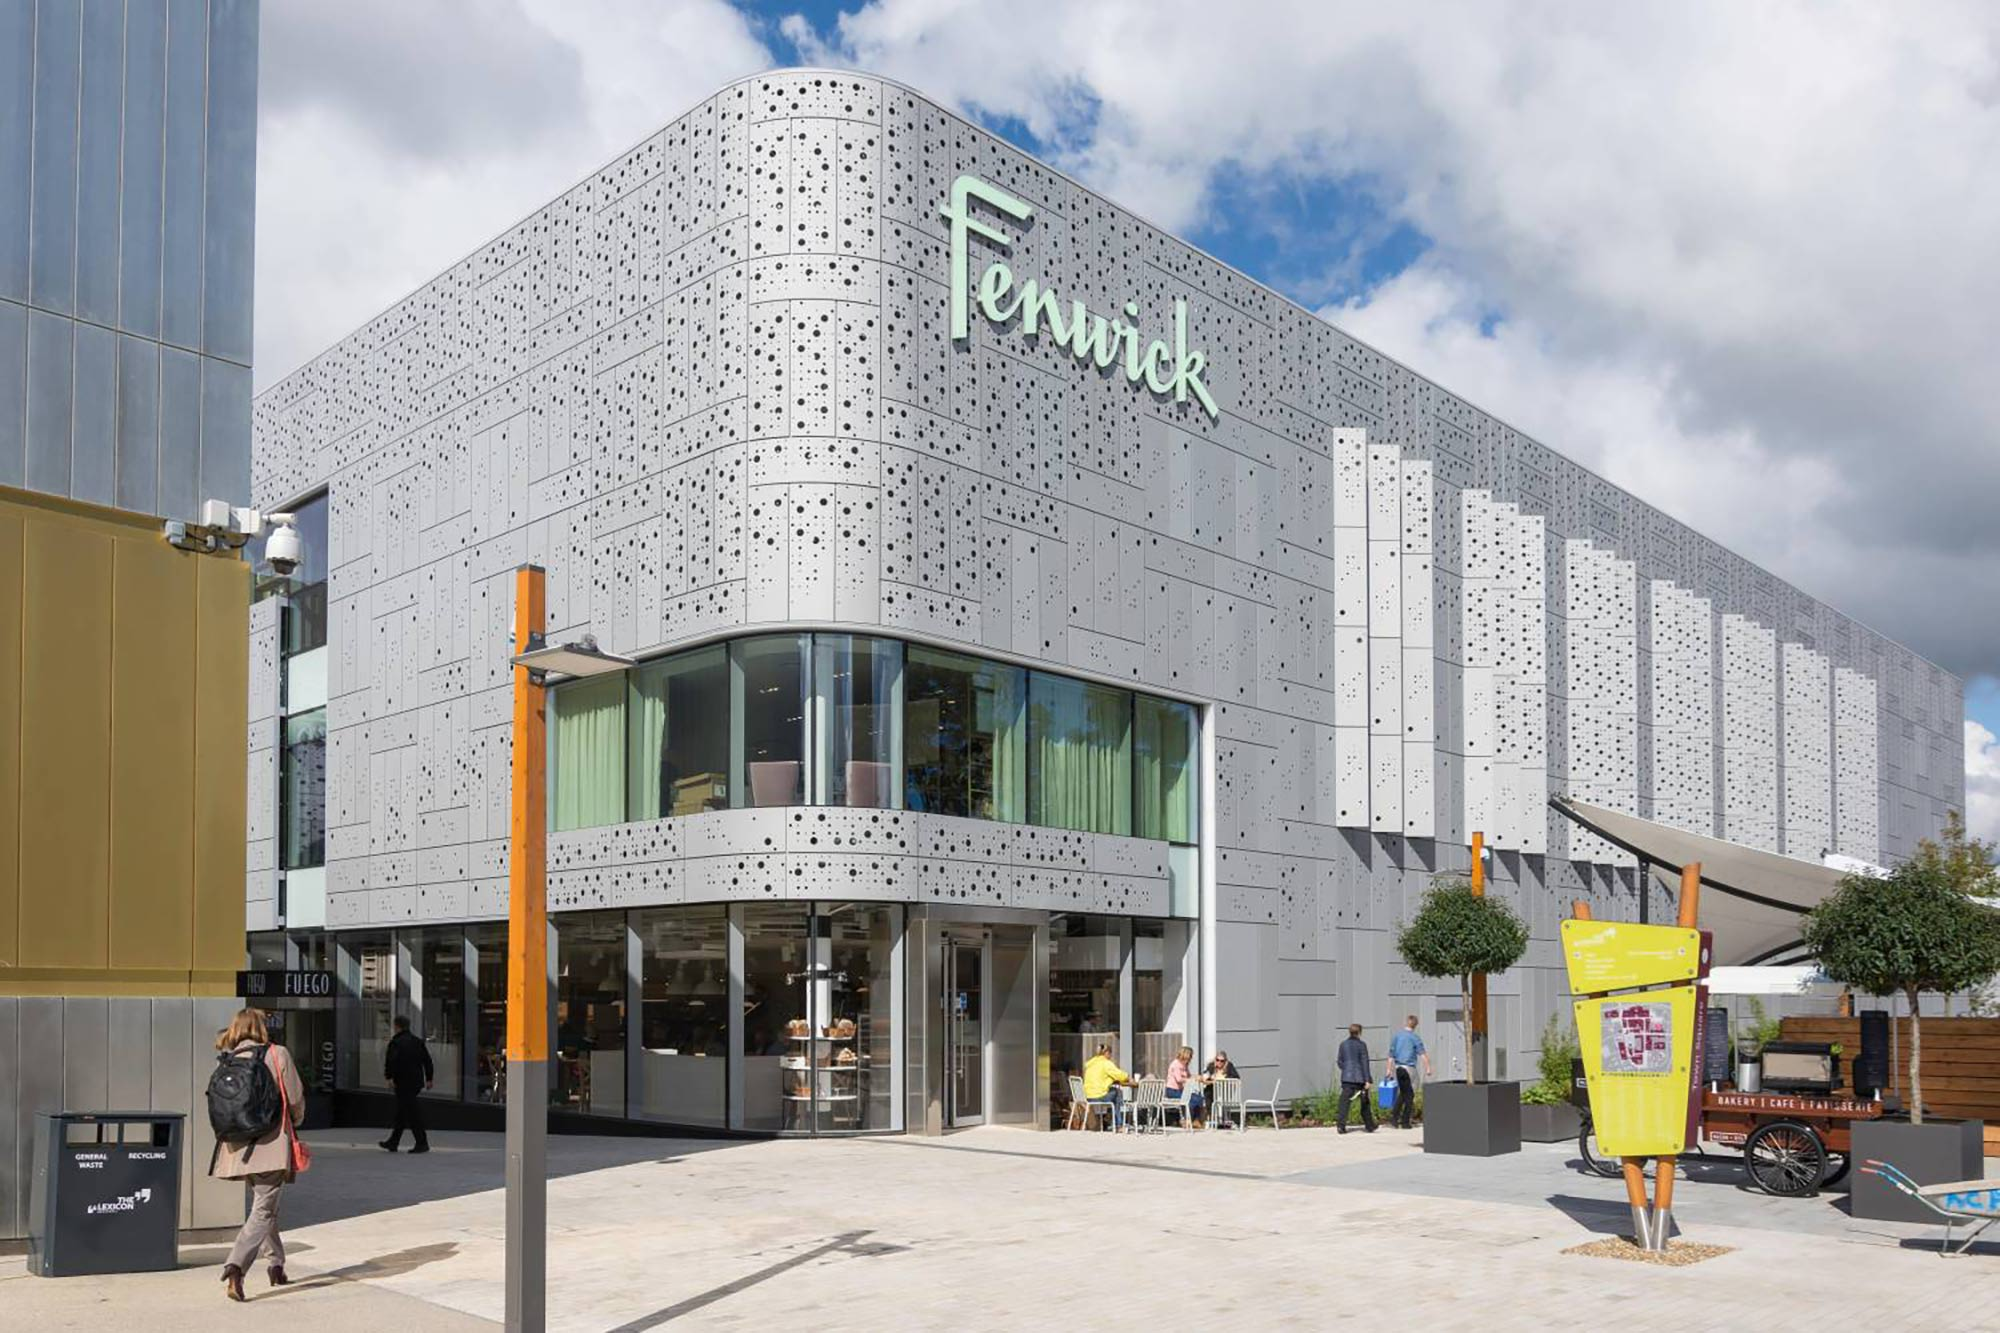 An image of the outside of Fenwick in Bracknell.